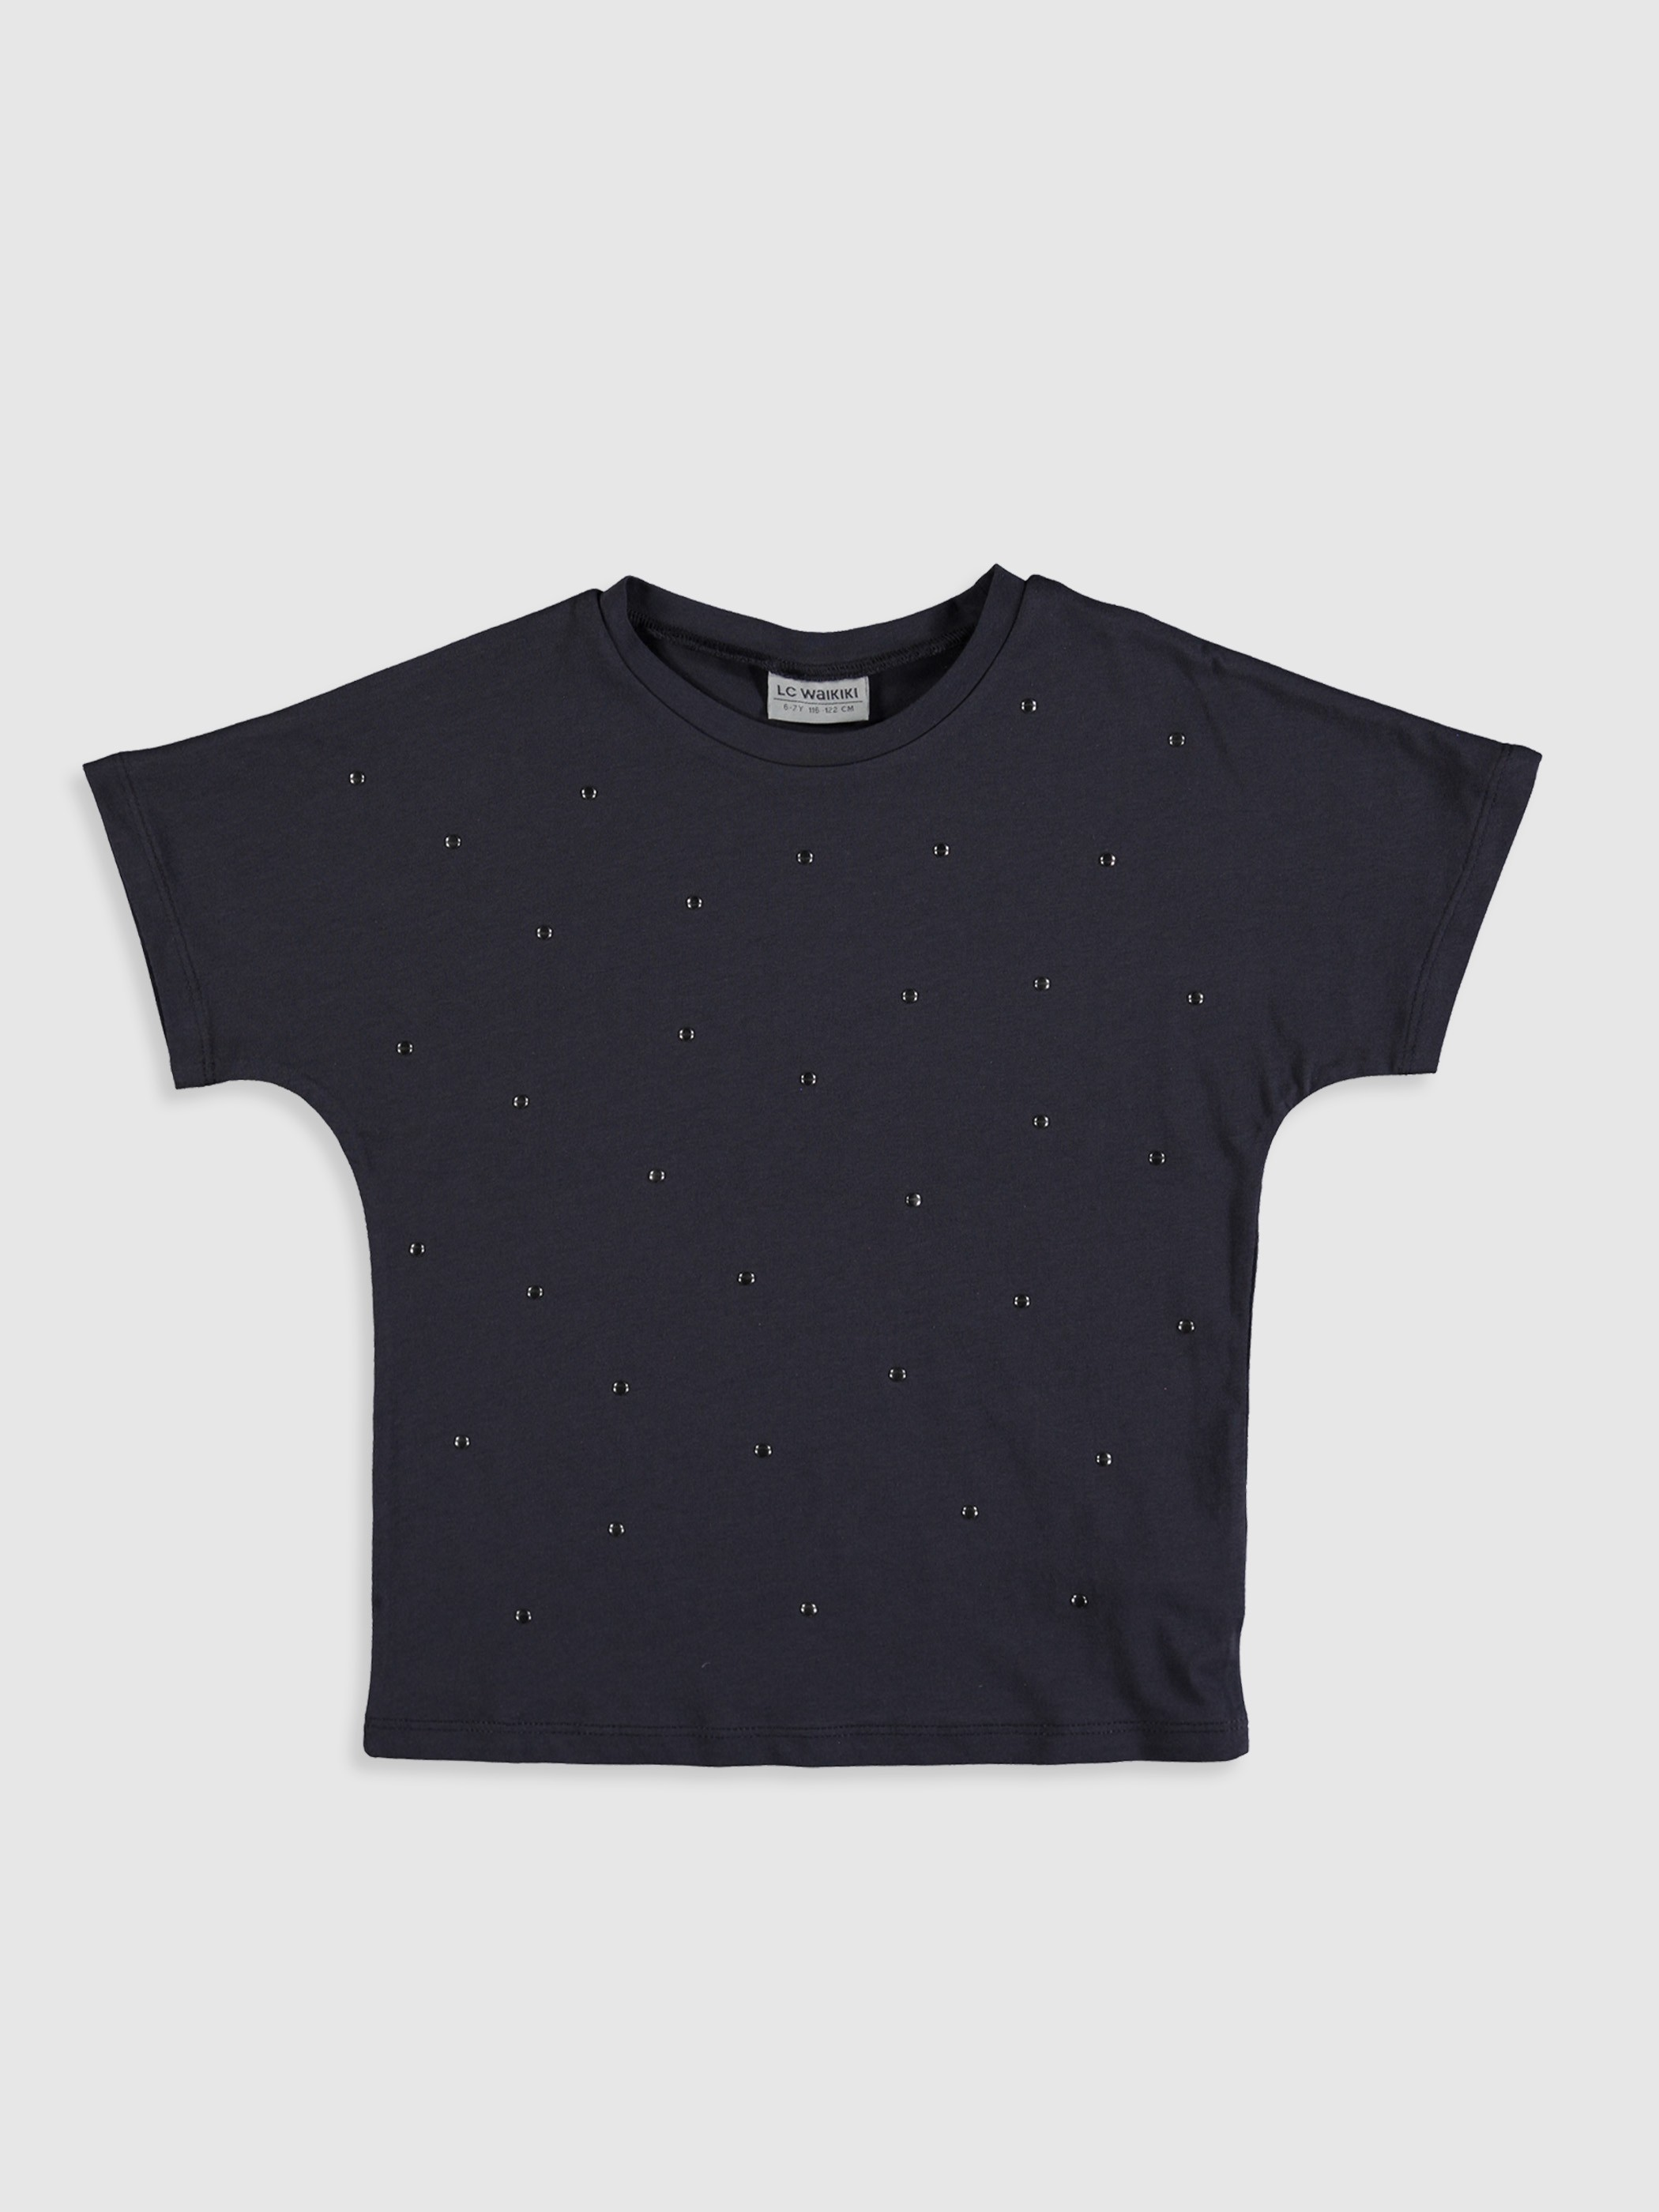 ANTHRACITE - T-Shirt - 0ST099Z4